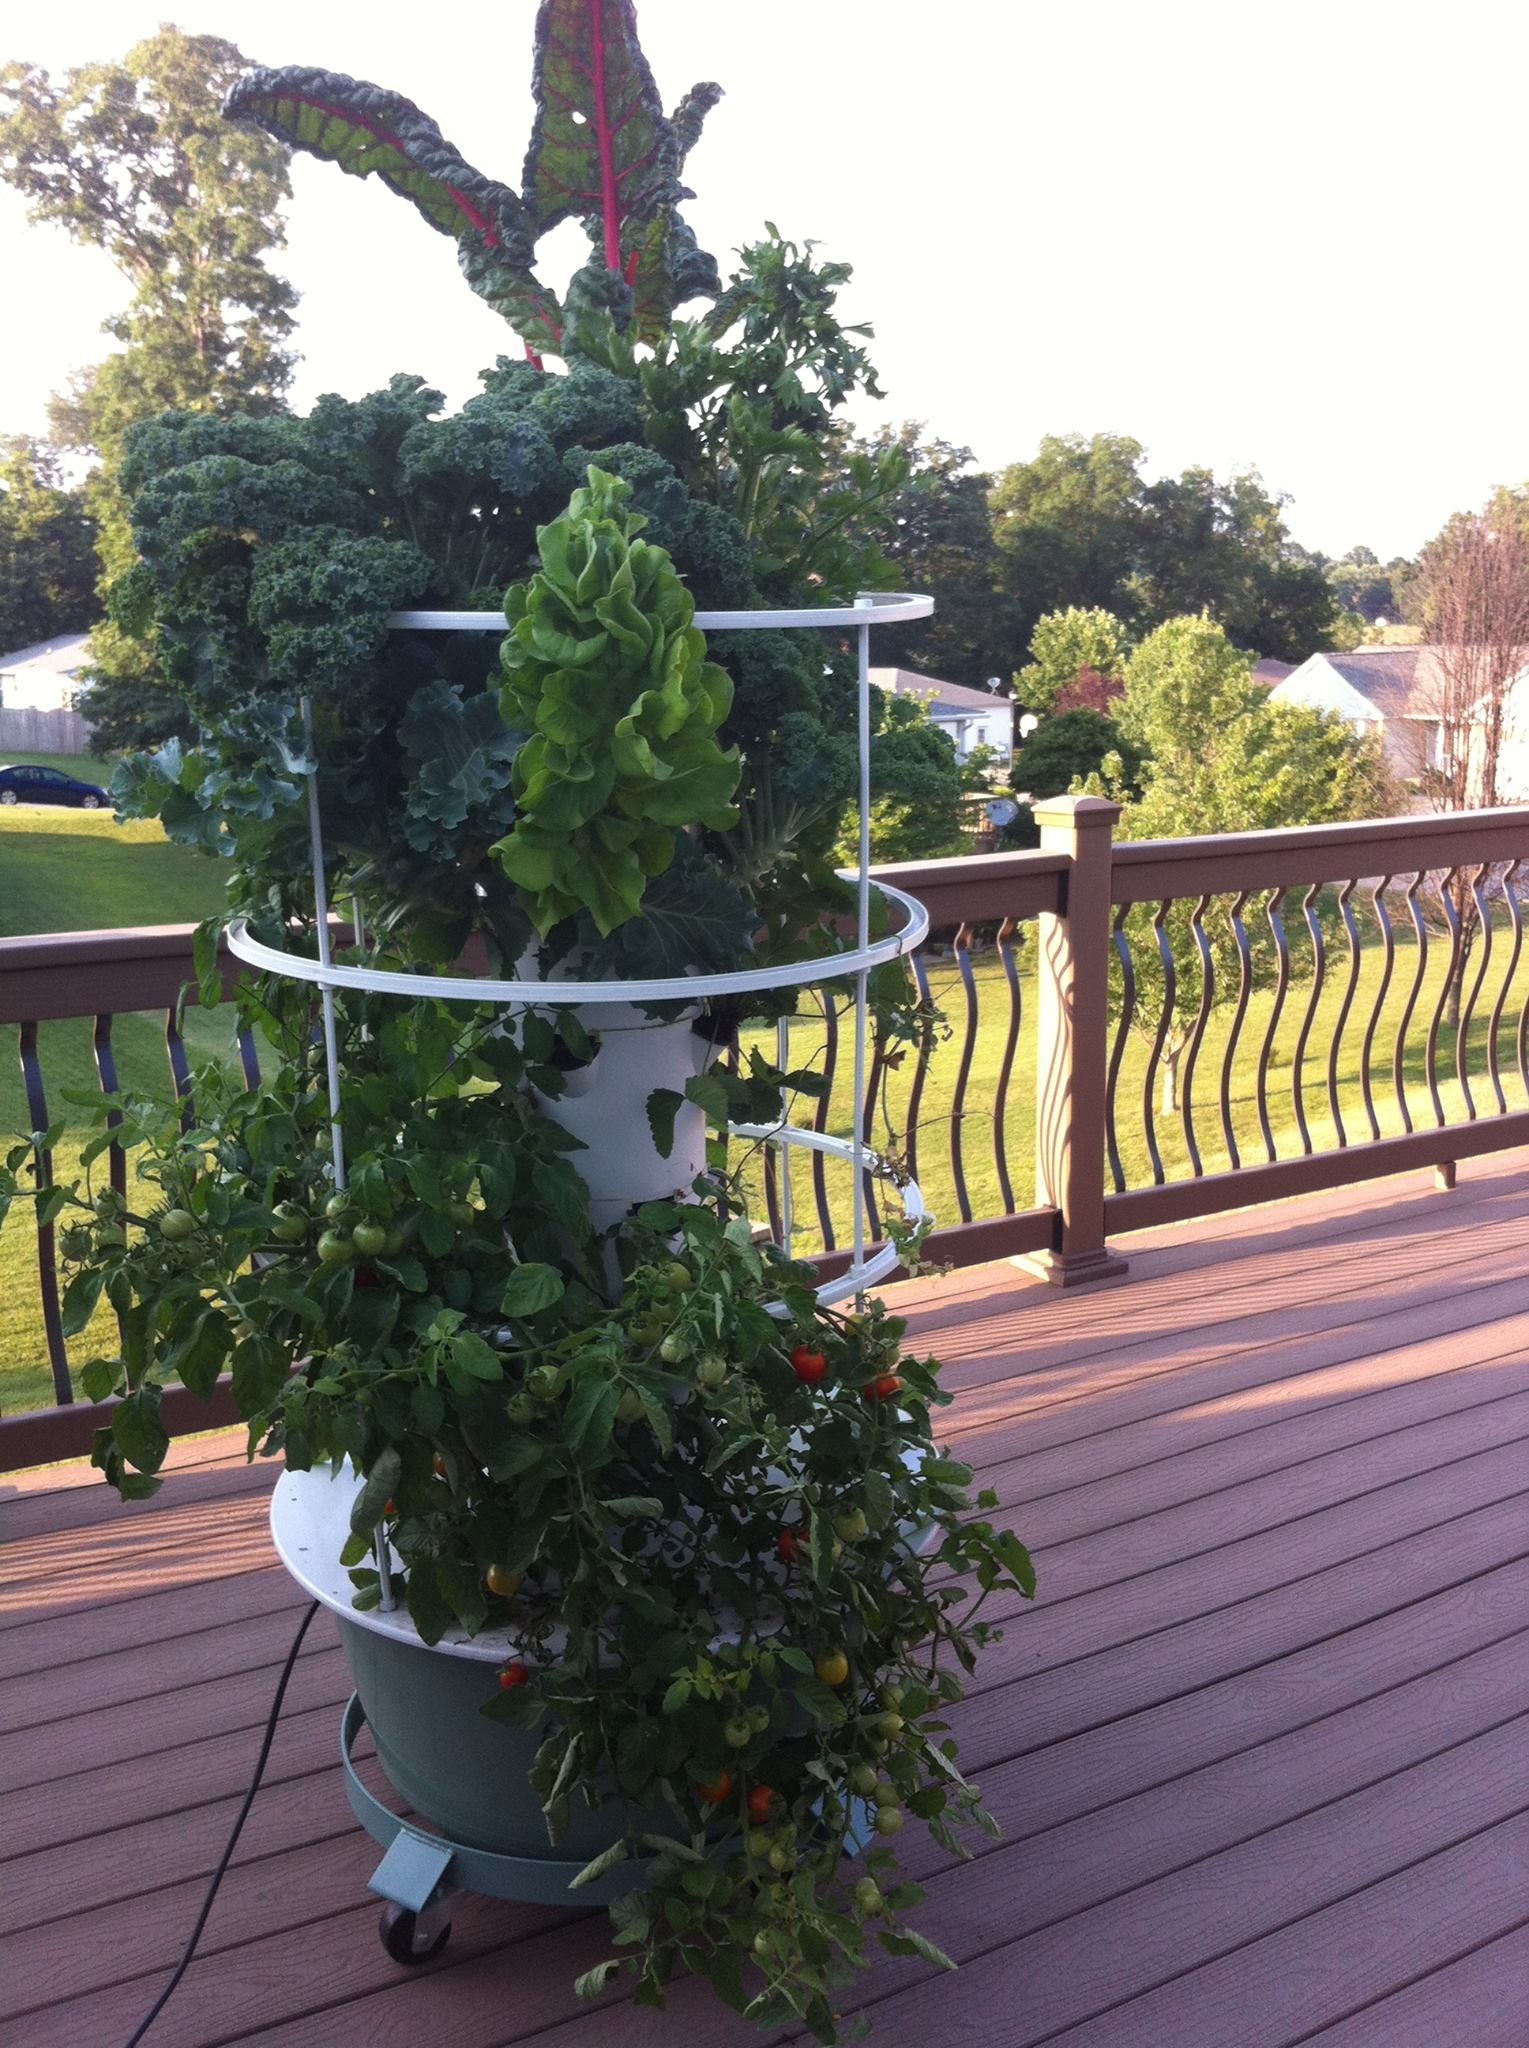 hydroponic tower garden with trellis